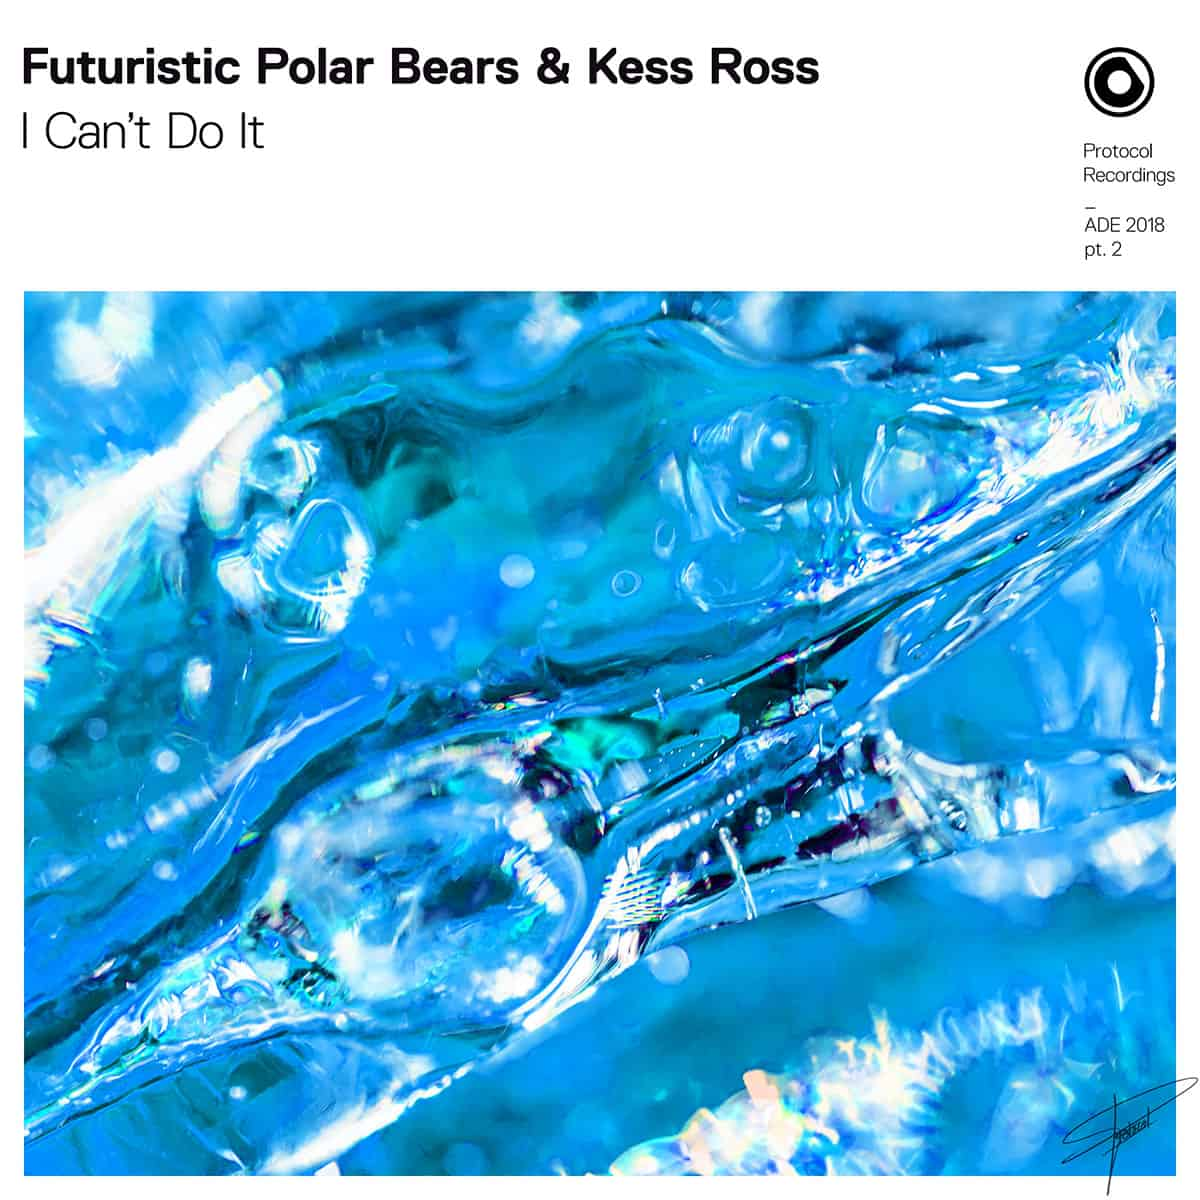 'I Can't Do It' by Futuristic Polar Bears & Kess Ross Release